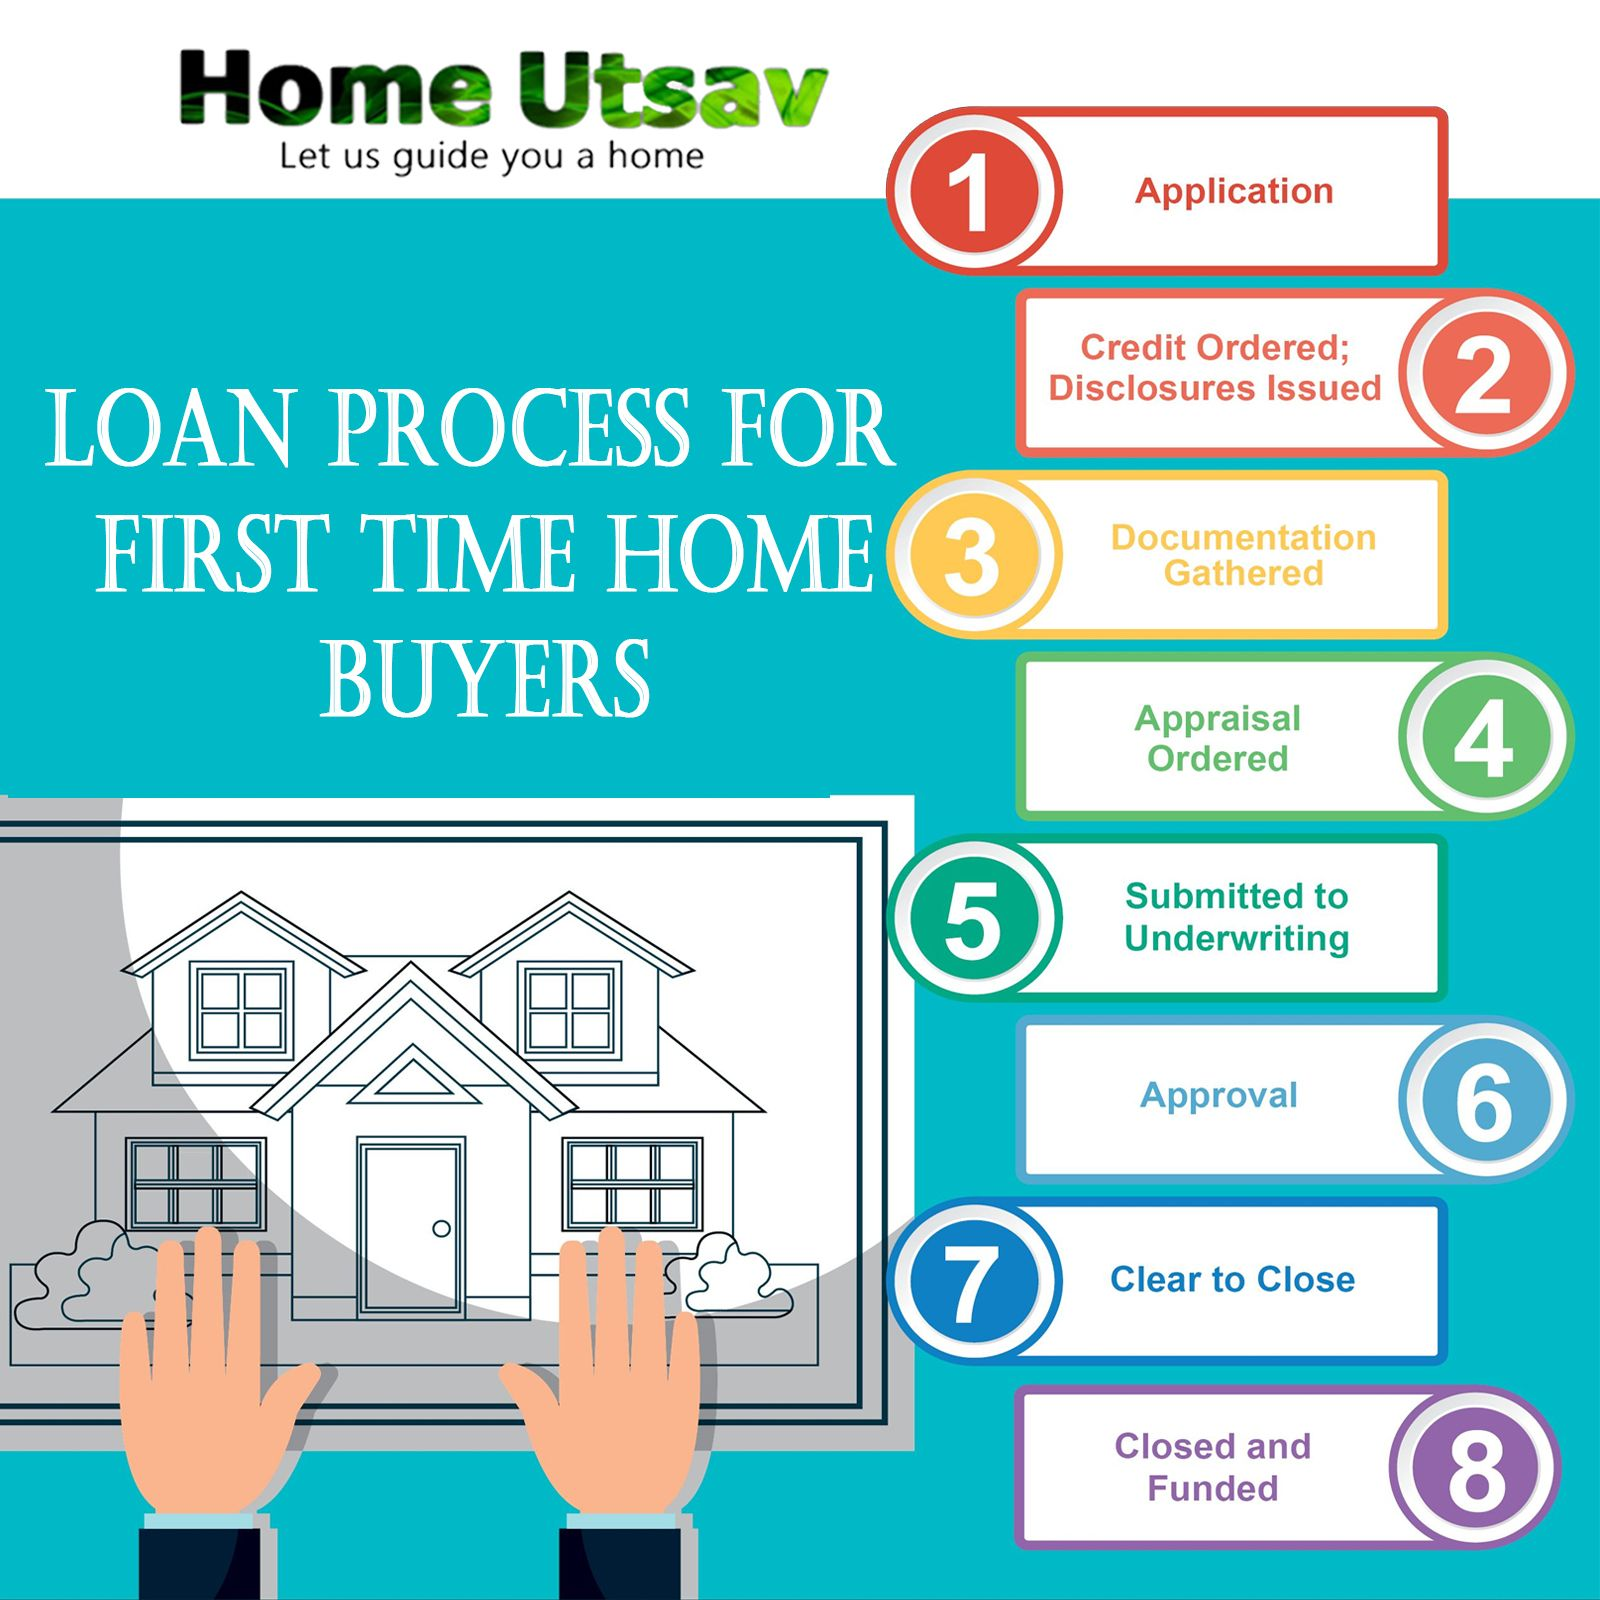 What are the loan Process for First Time Home Buyers? So